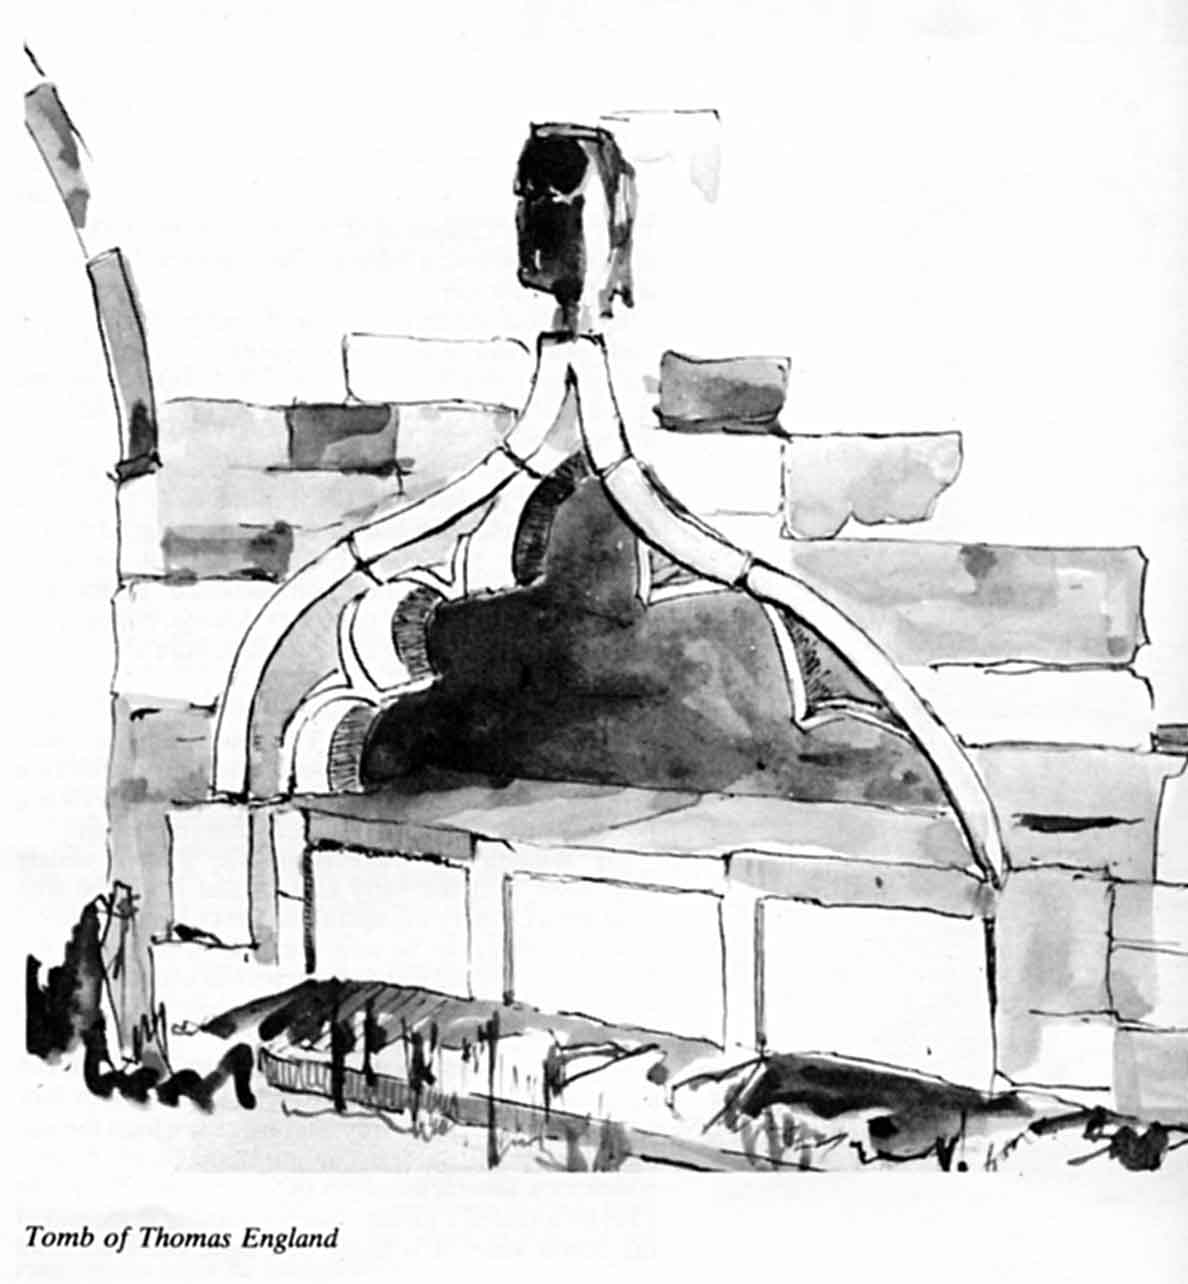 drawing of tomb of Thomas England